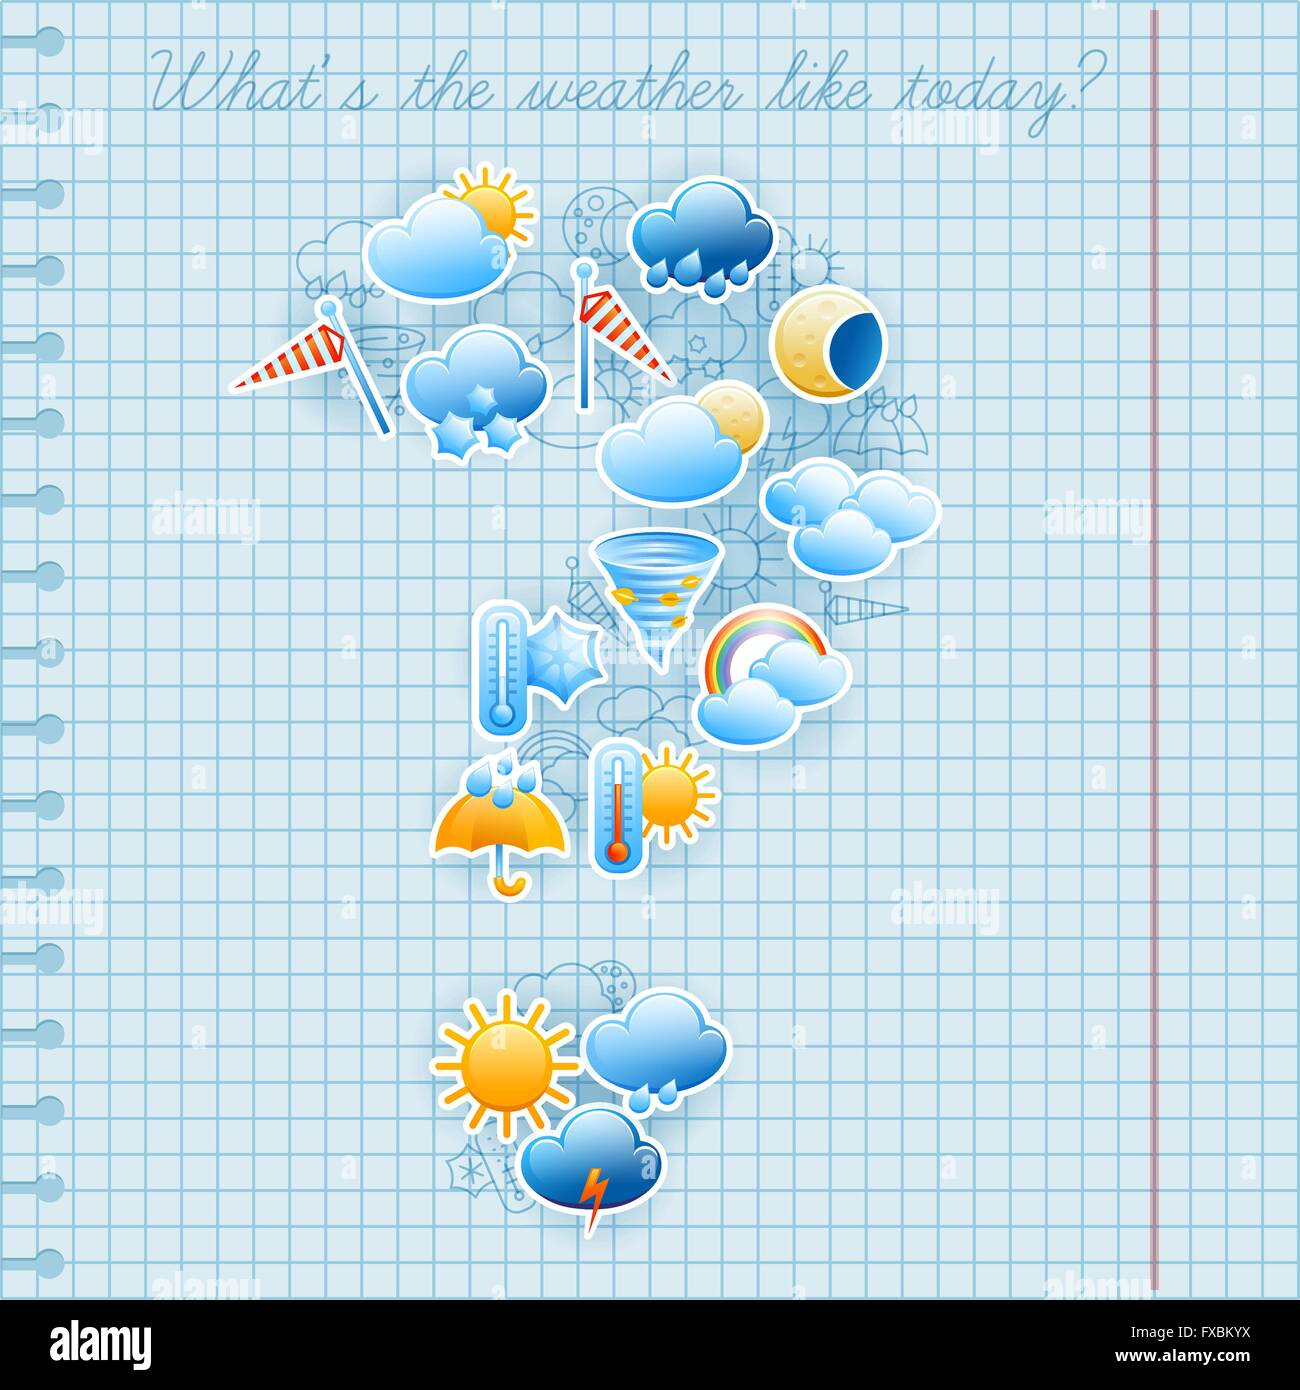 School notebook page weather forecast concept - Stock Vector